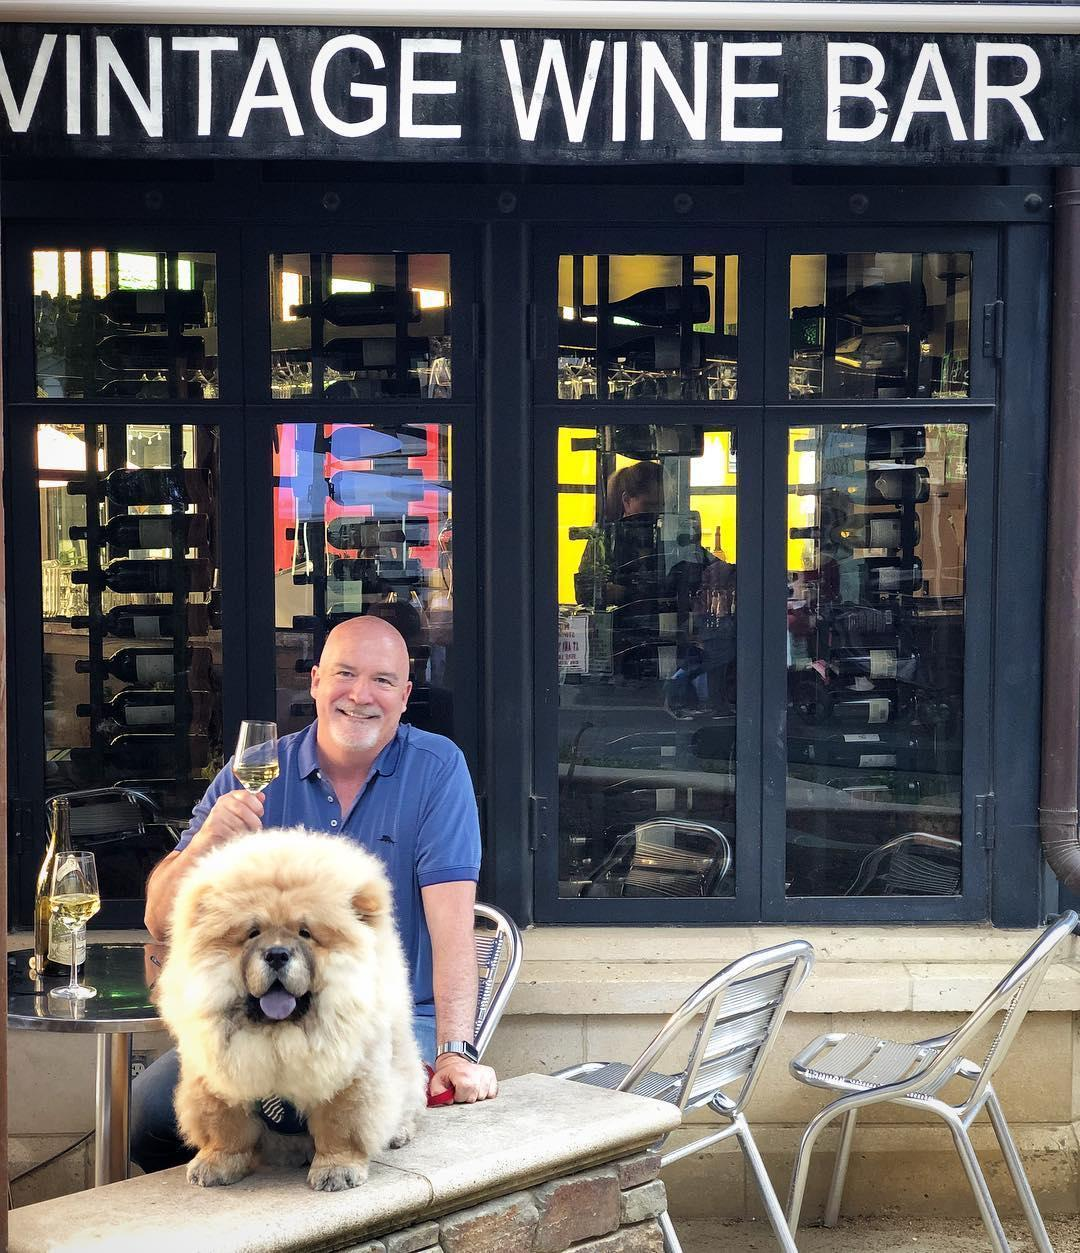 Vintage Wine Bar in San Jose welcomes dogs on the patio.